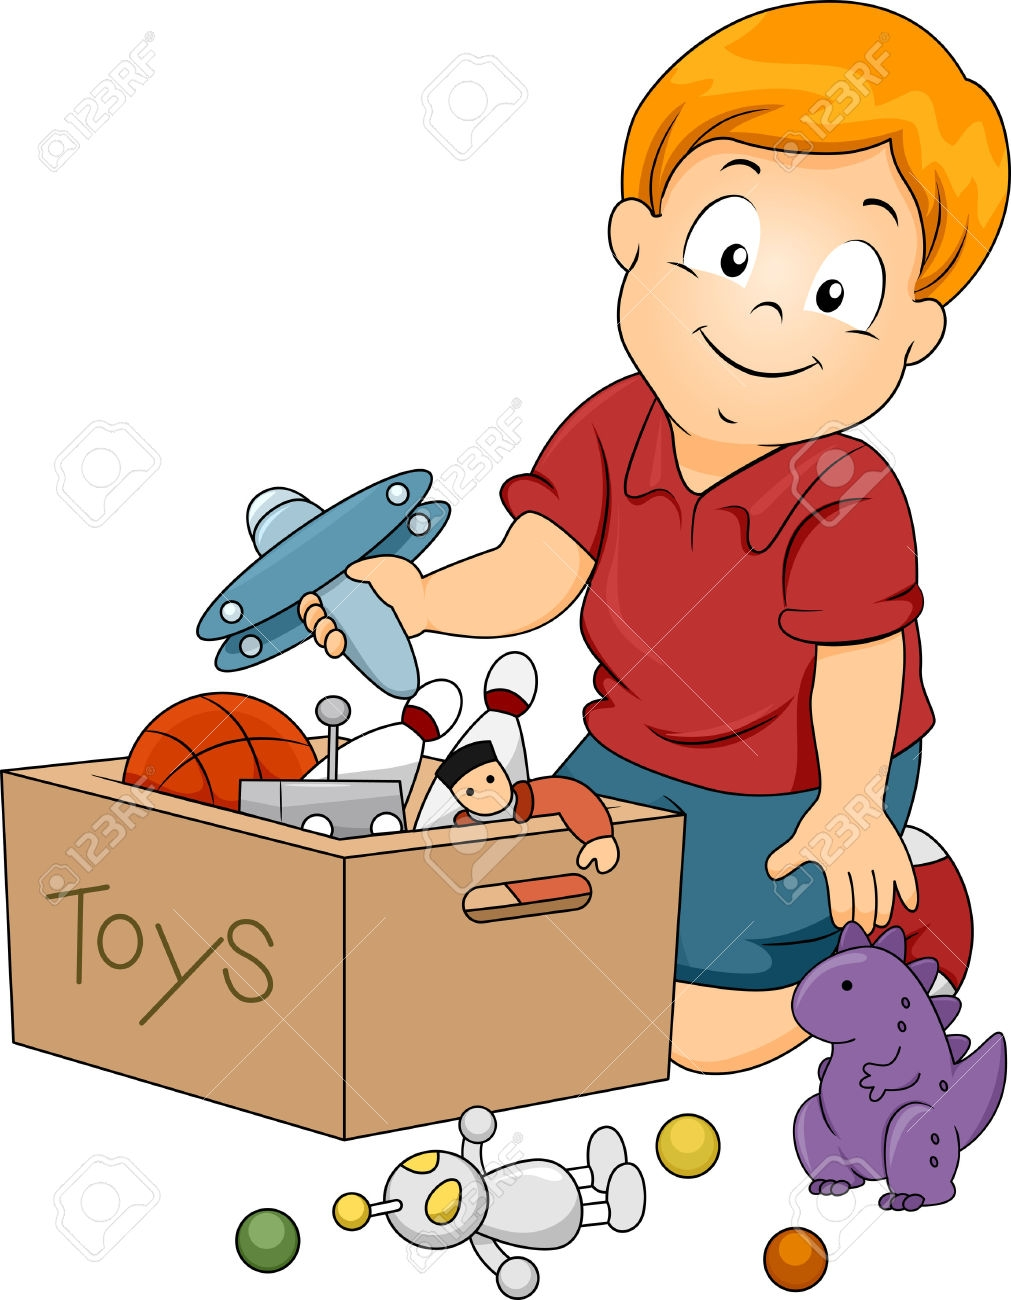 1011x1300 Kids Cleaning Up Toys Clipart